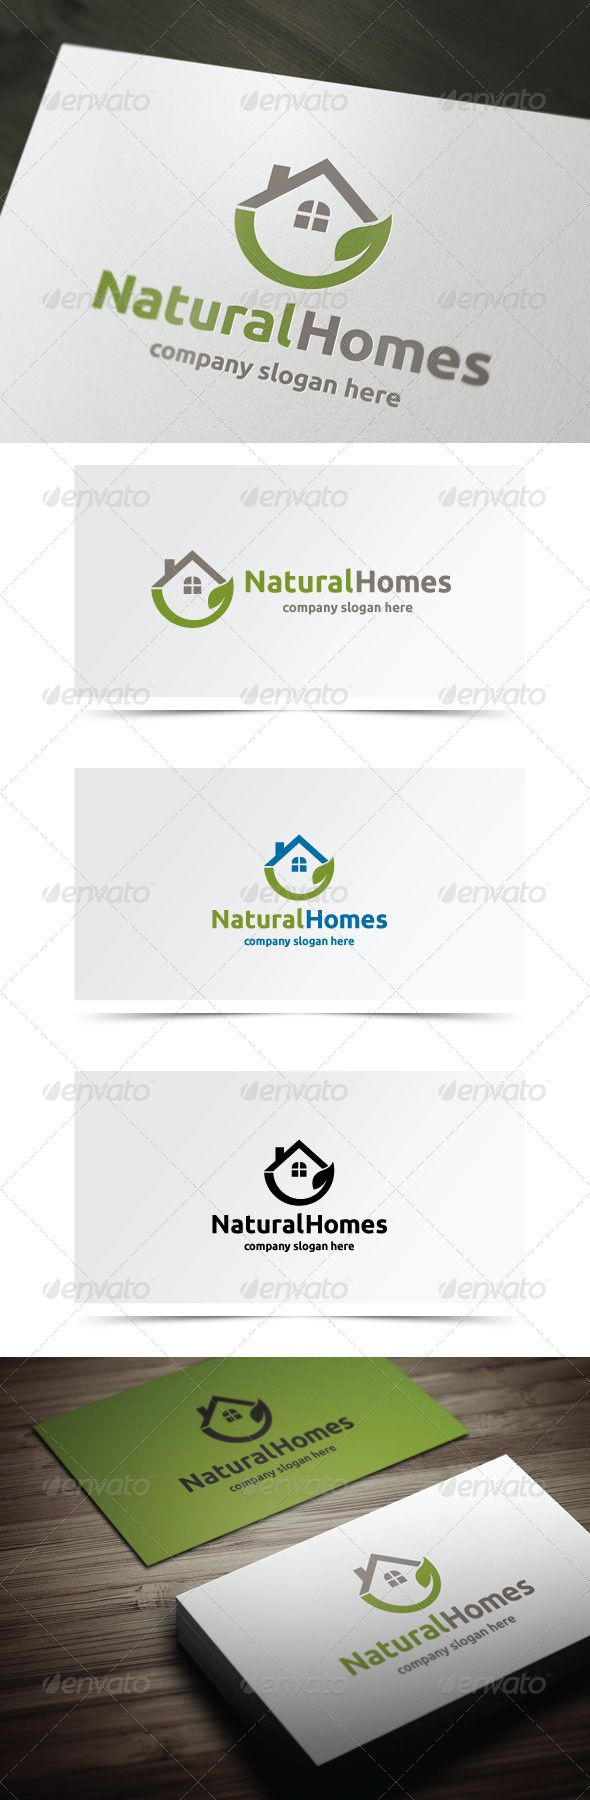 Natural Homes  #GraphicRiver         Eco, Building, Real Estate Logo Template  	 - Vector logo – Resizable for easy editing – AI, EPS files  	 Font Used – Ubuntu  font.ubuntu                      Created: 1 December 13                    Graphics Files Included:   Vector EPS #AI Illustrator                   Layered:   Yes                   Minimum Adobe CS Version:   CS                   Resolution:   Resizable